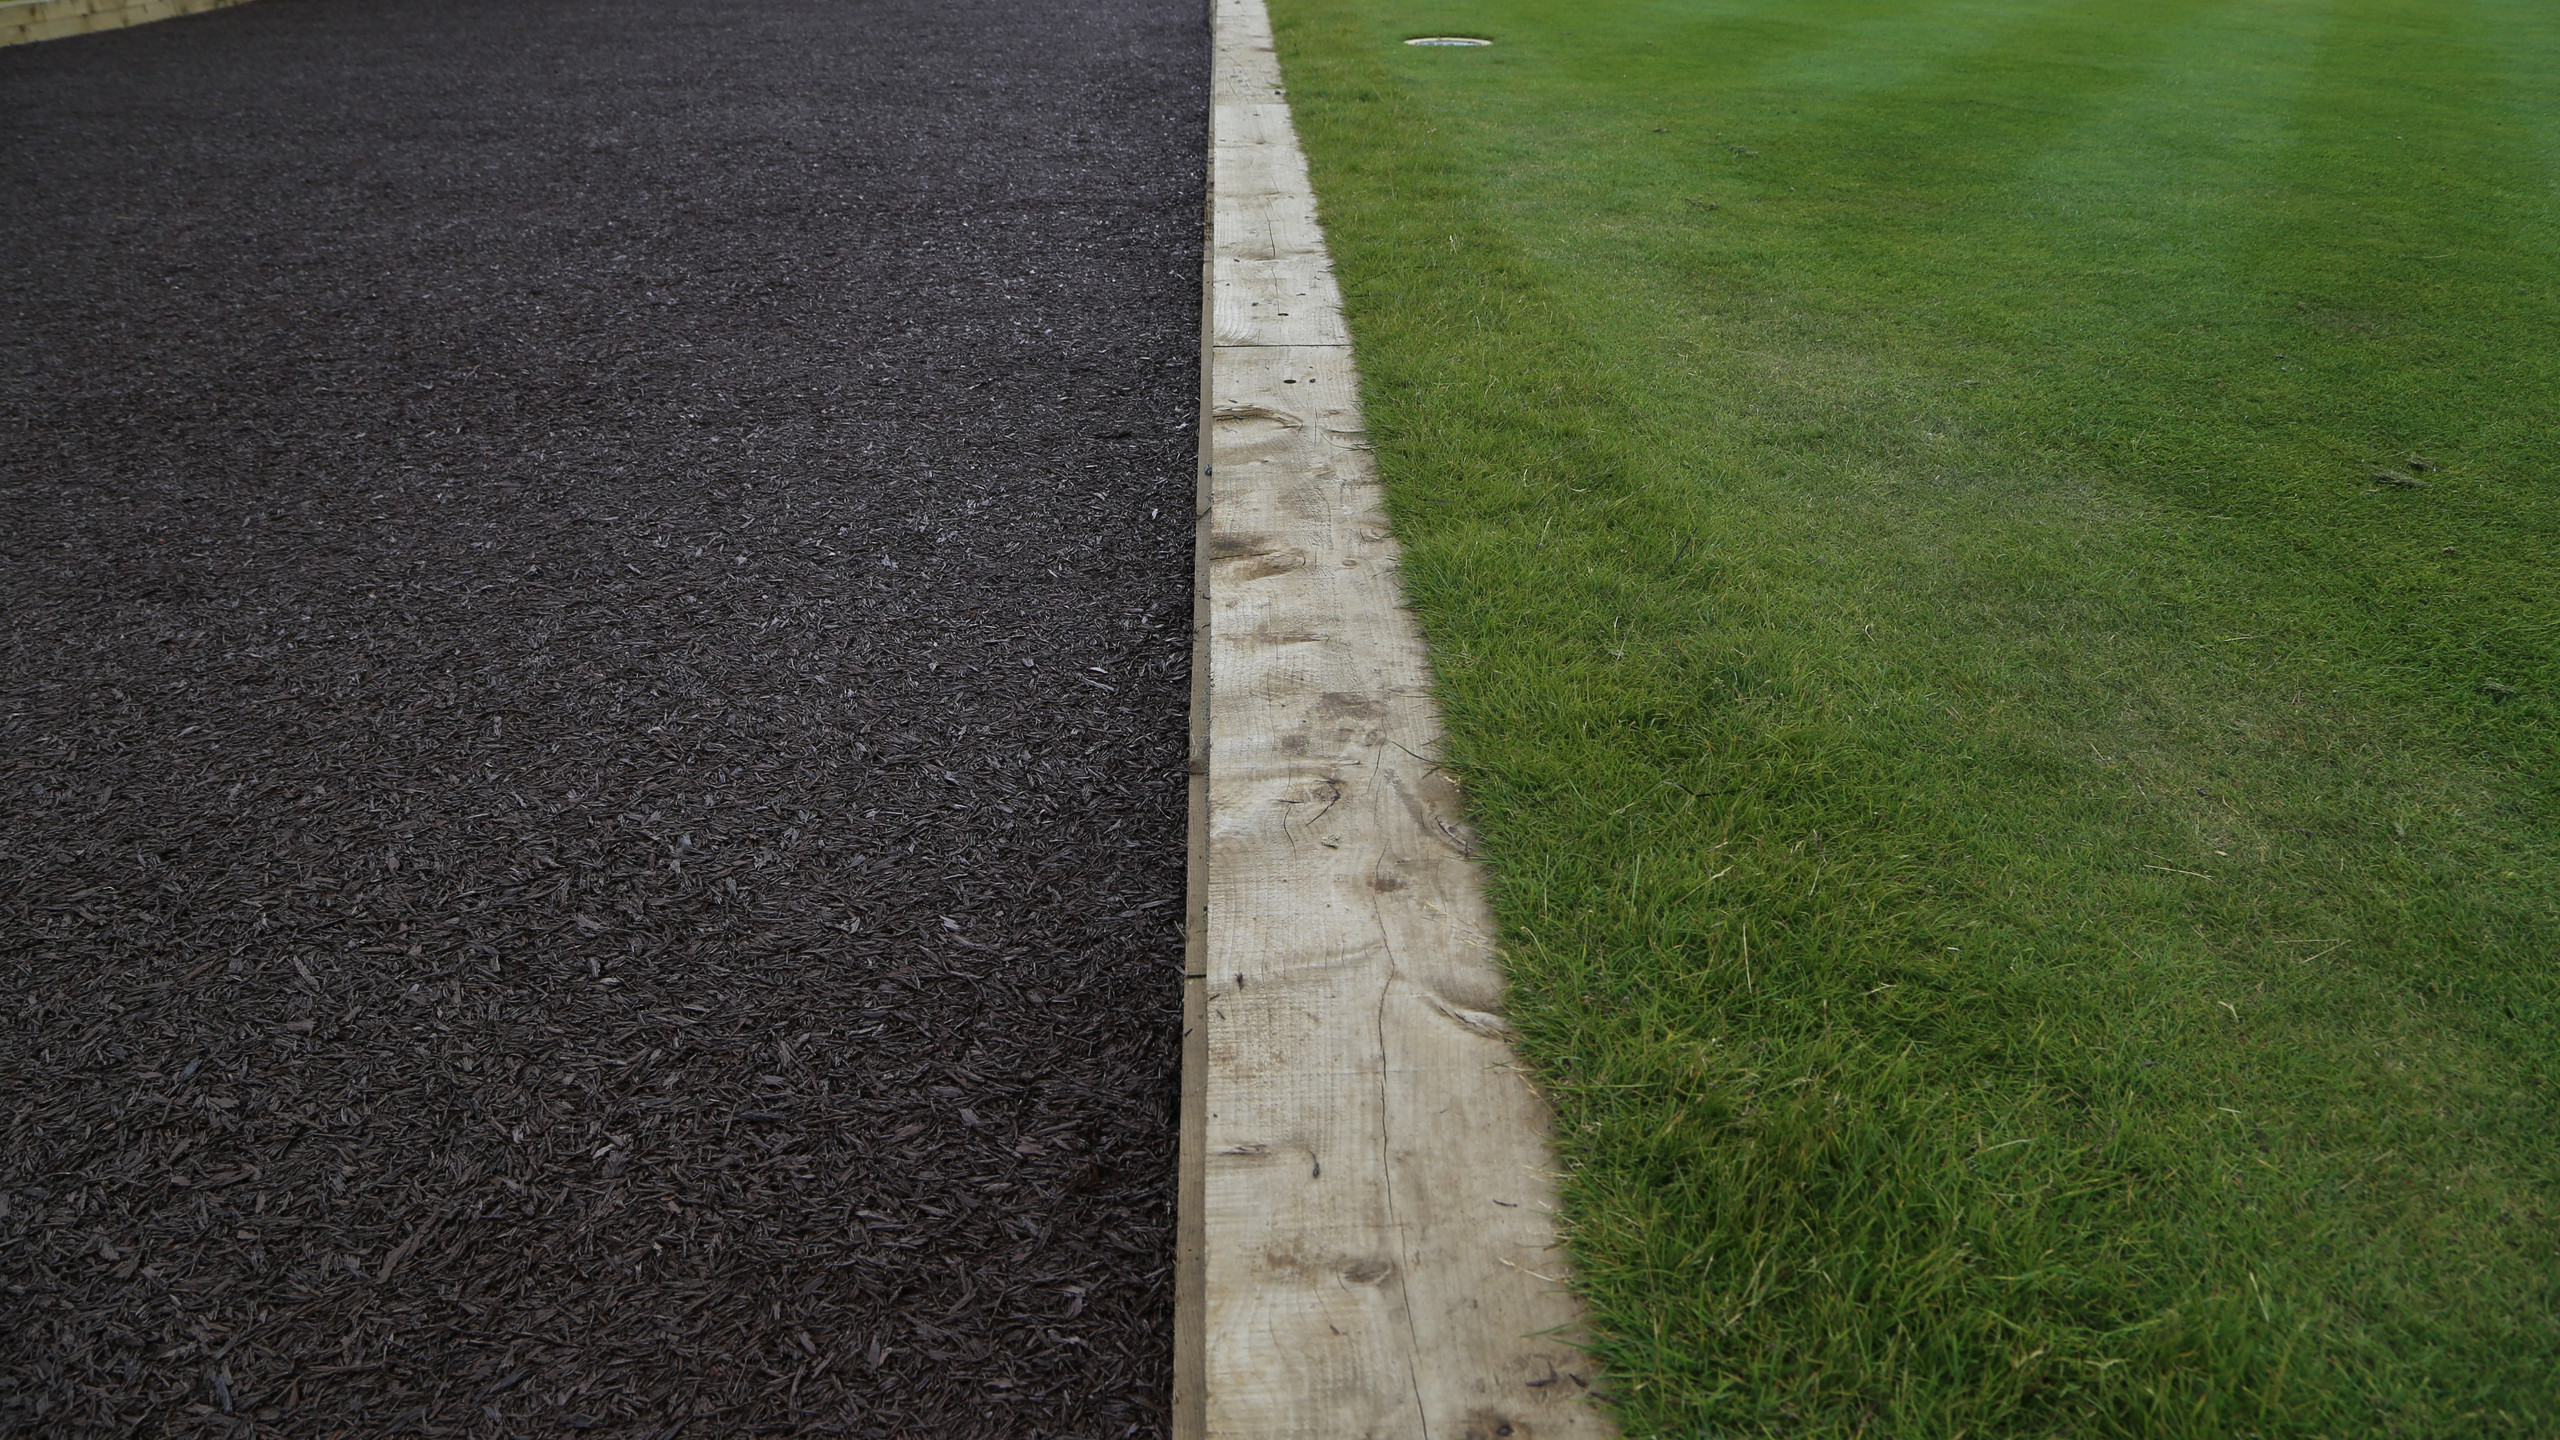 New rubber finish at the first Tee